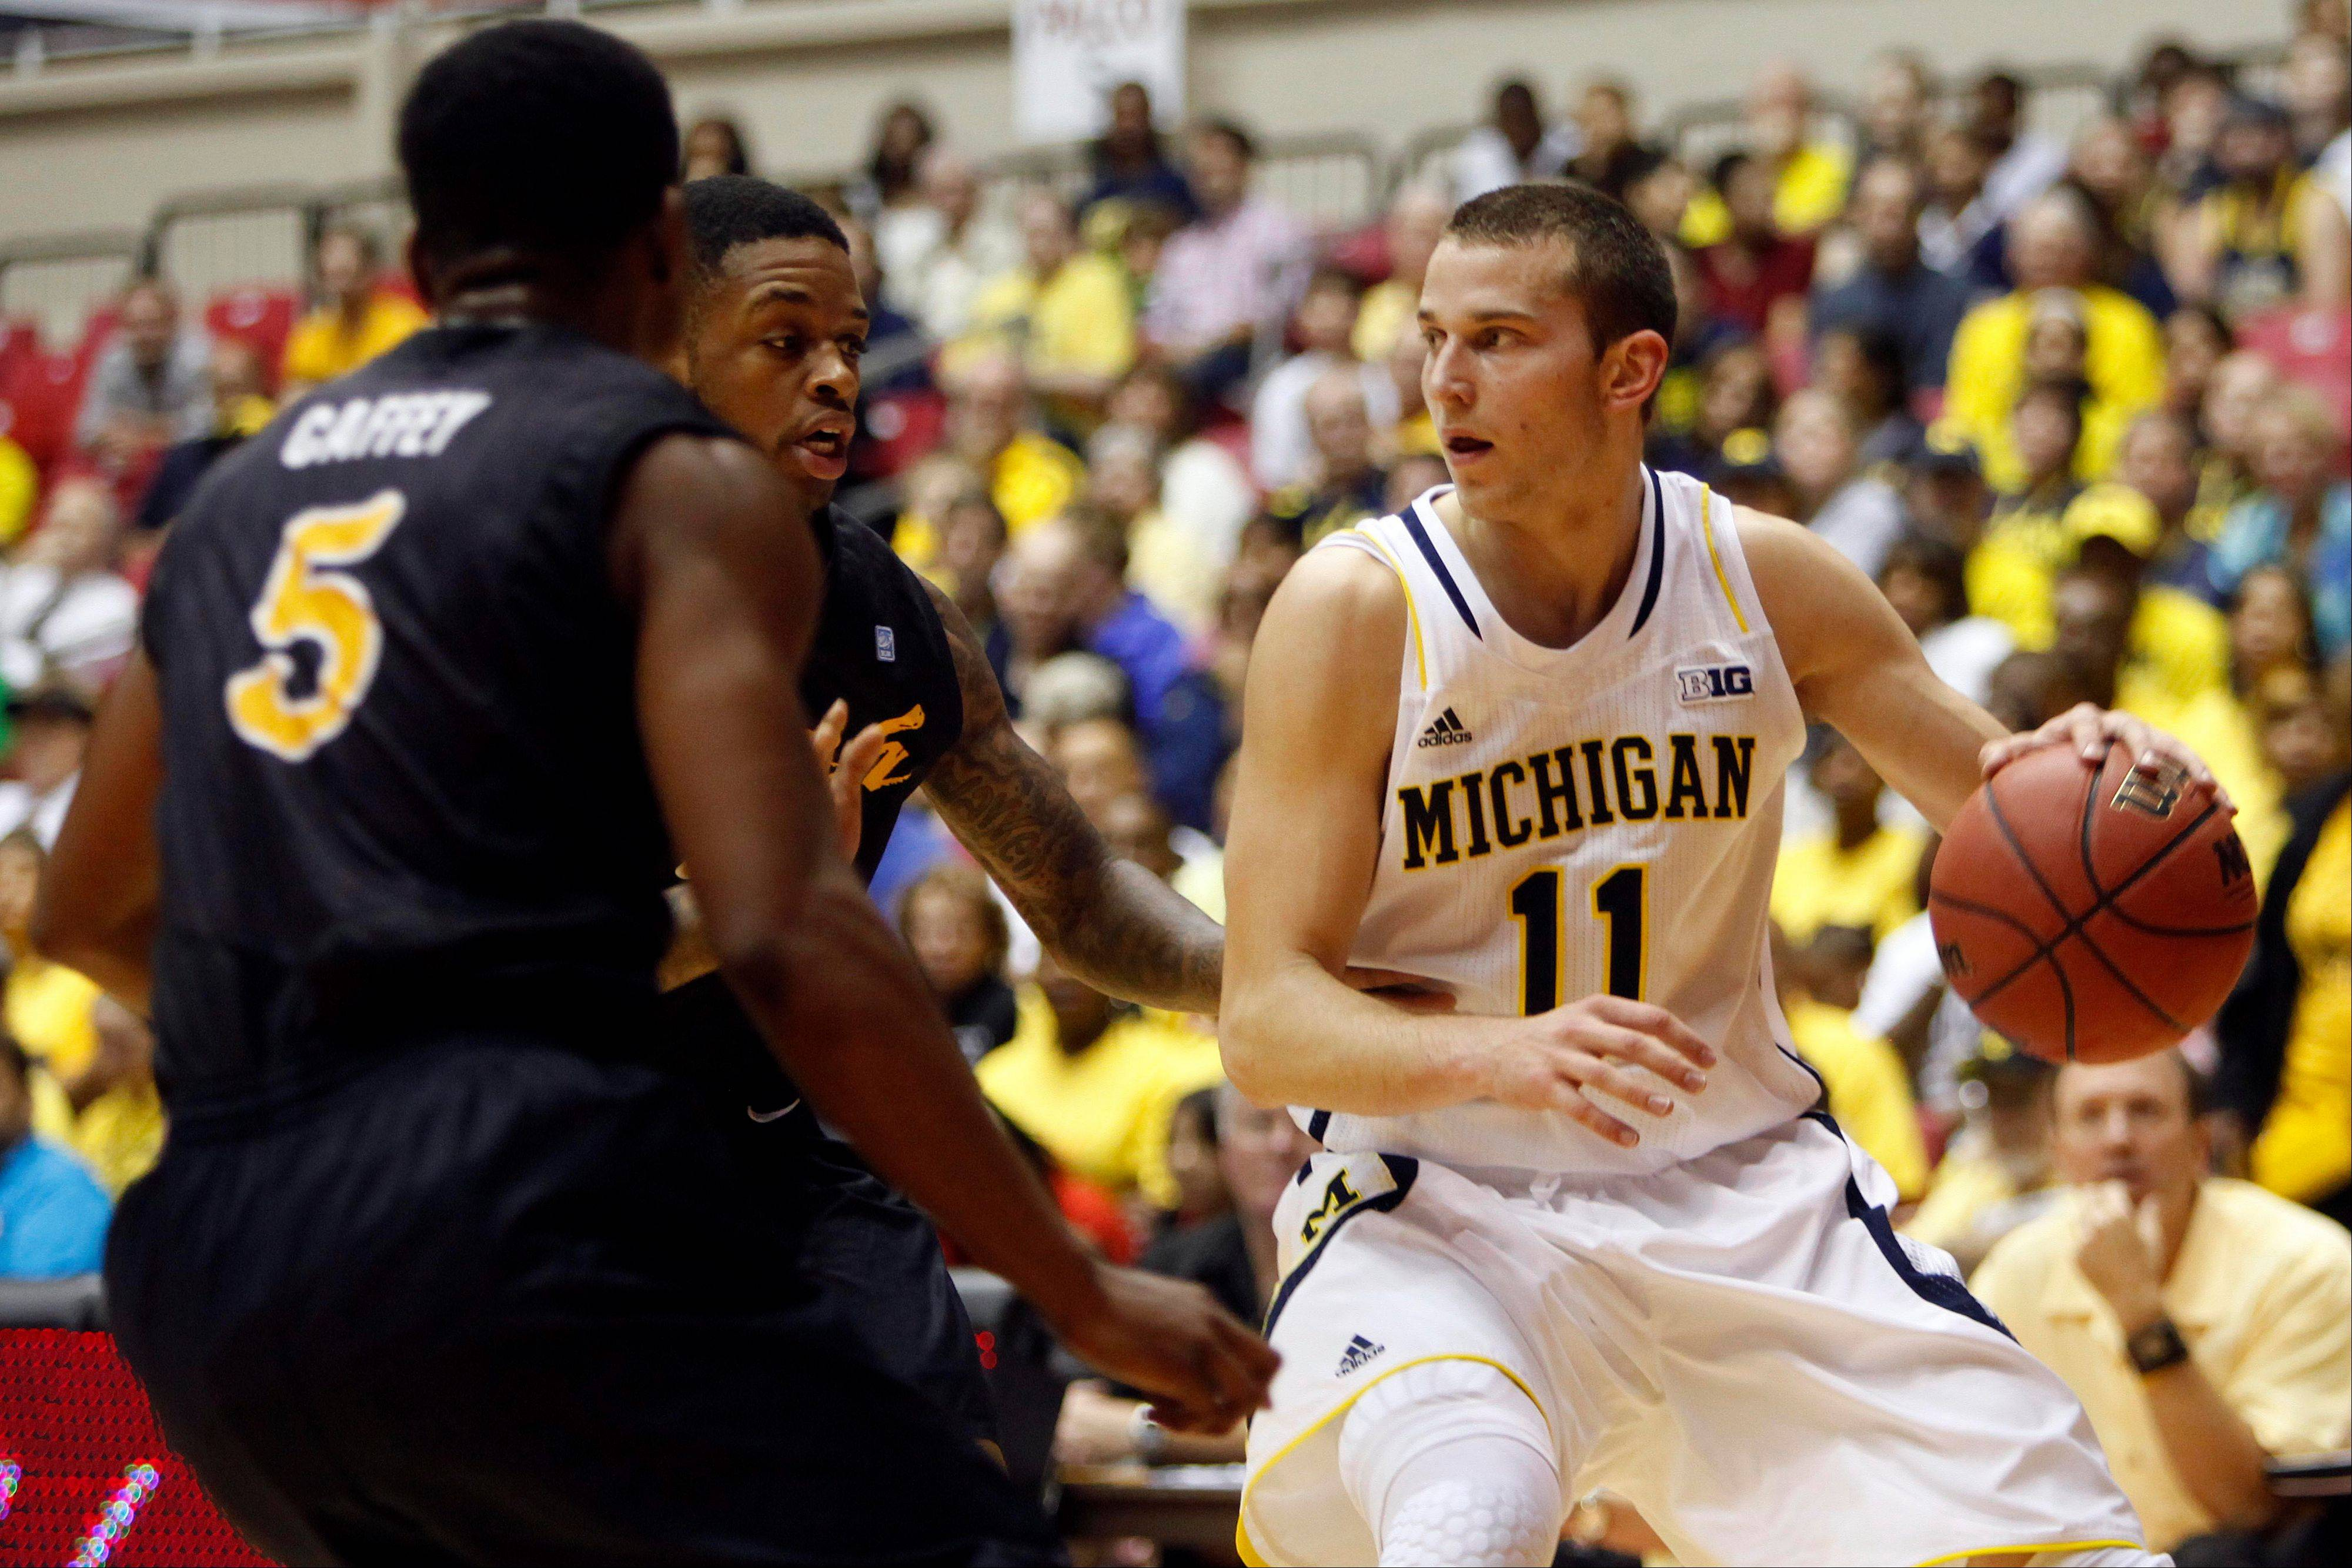 Long Beach State's Mike Caffey, left, and Kris Gulley pressure Michigan's Nik Stauskas in Thursday's game in San Juan, Puerto Rico.